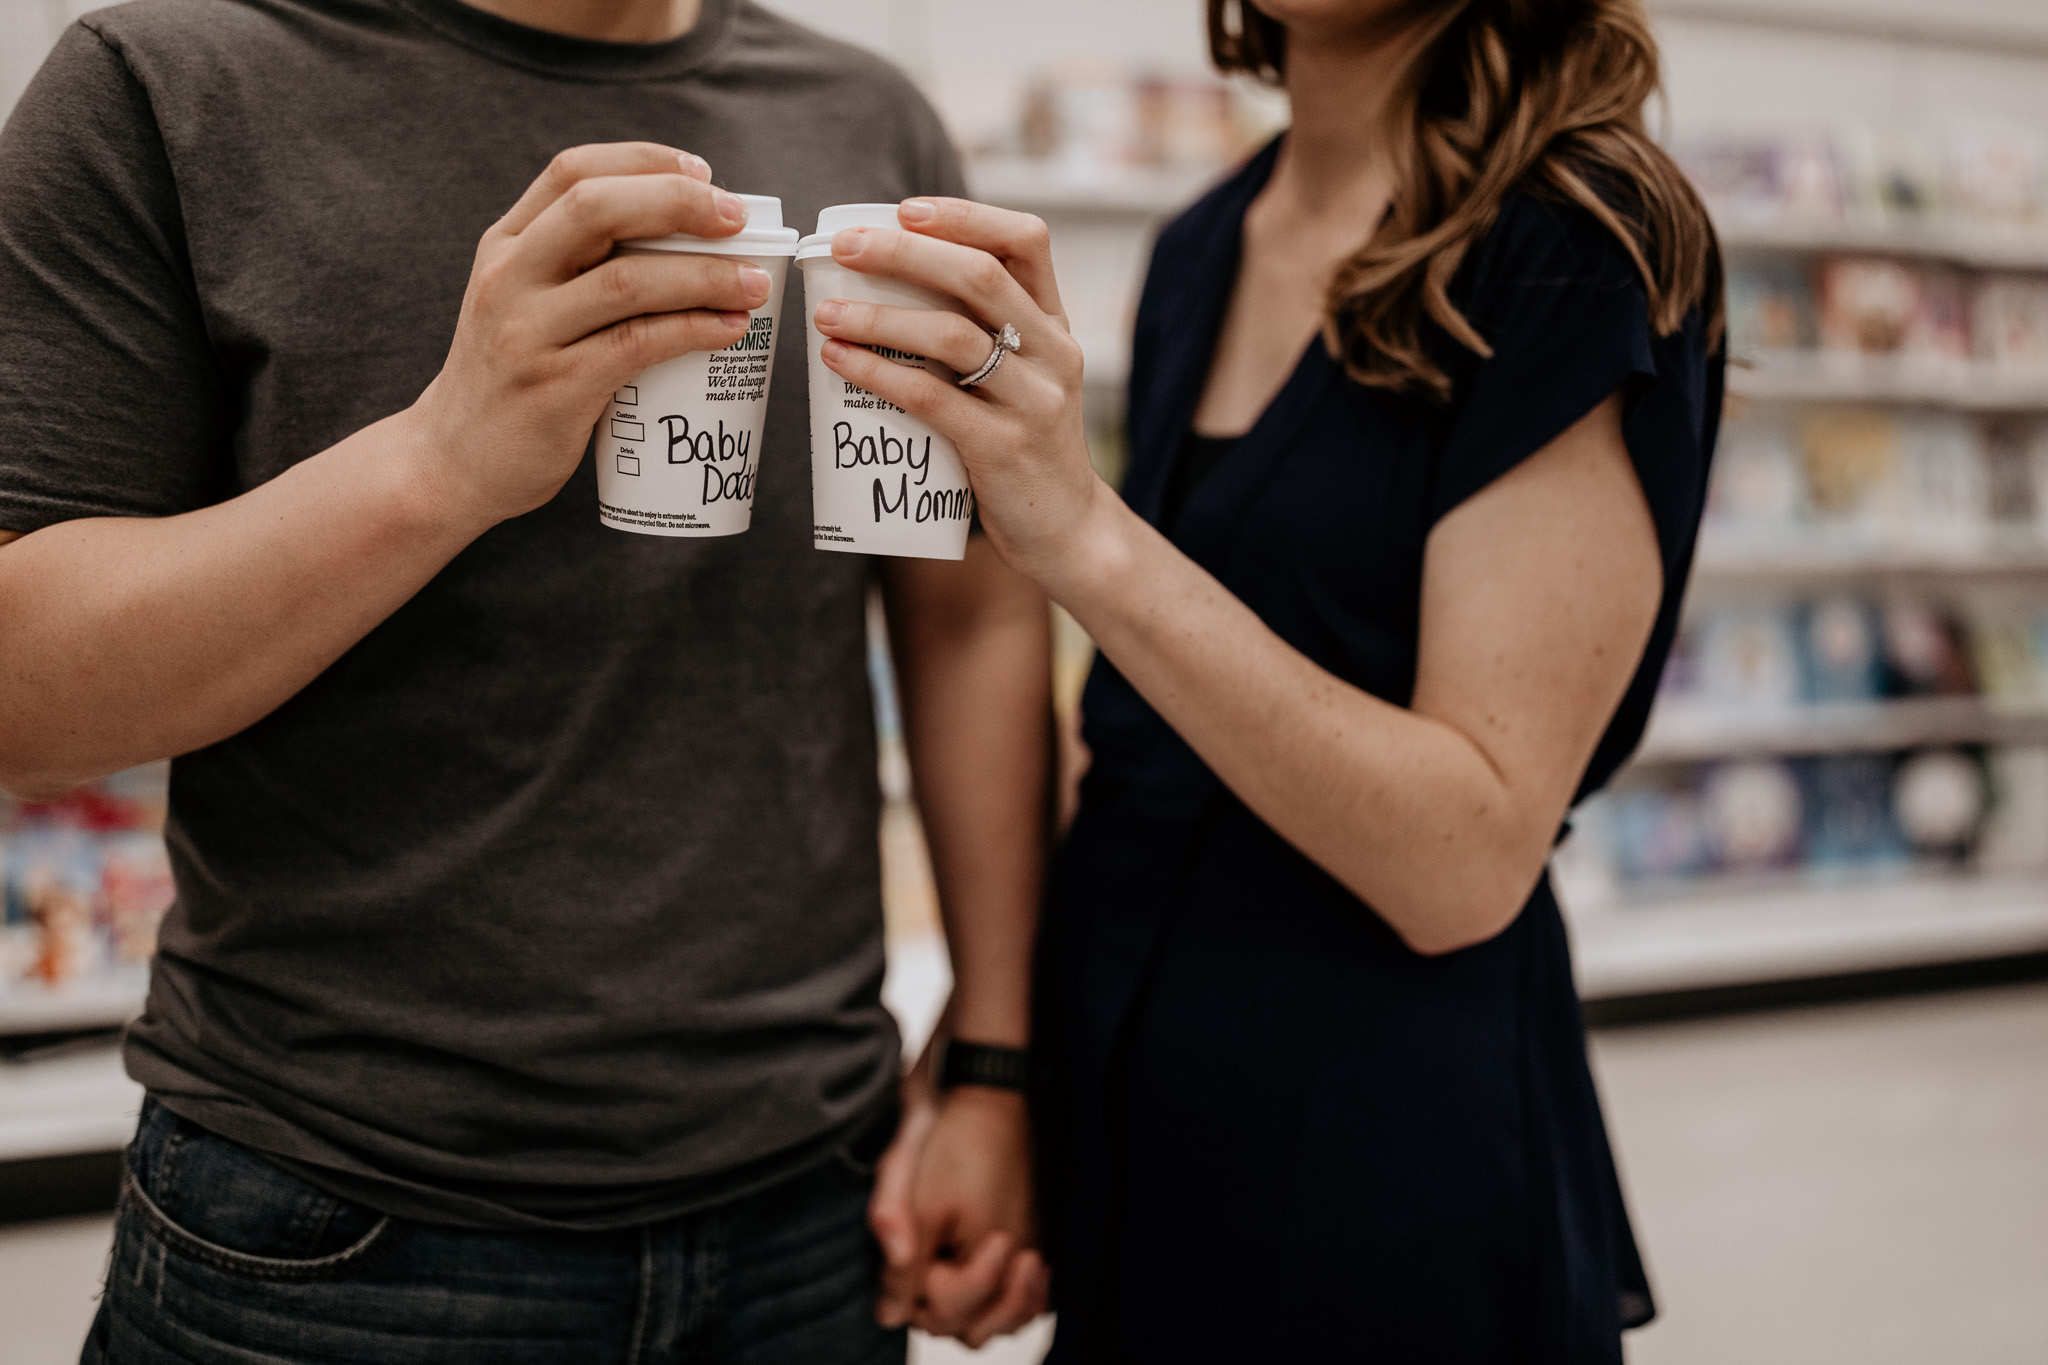 Pregnancy Announcement with Starbucks